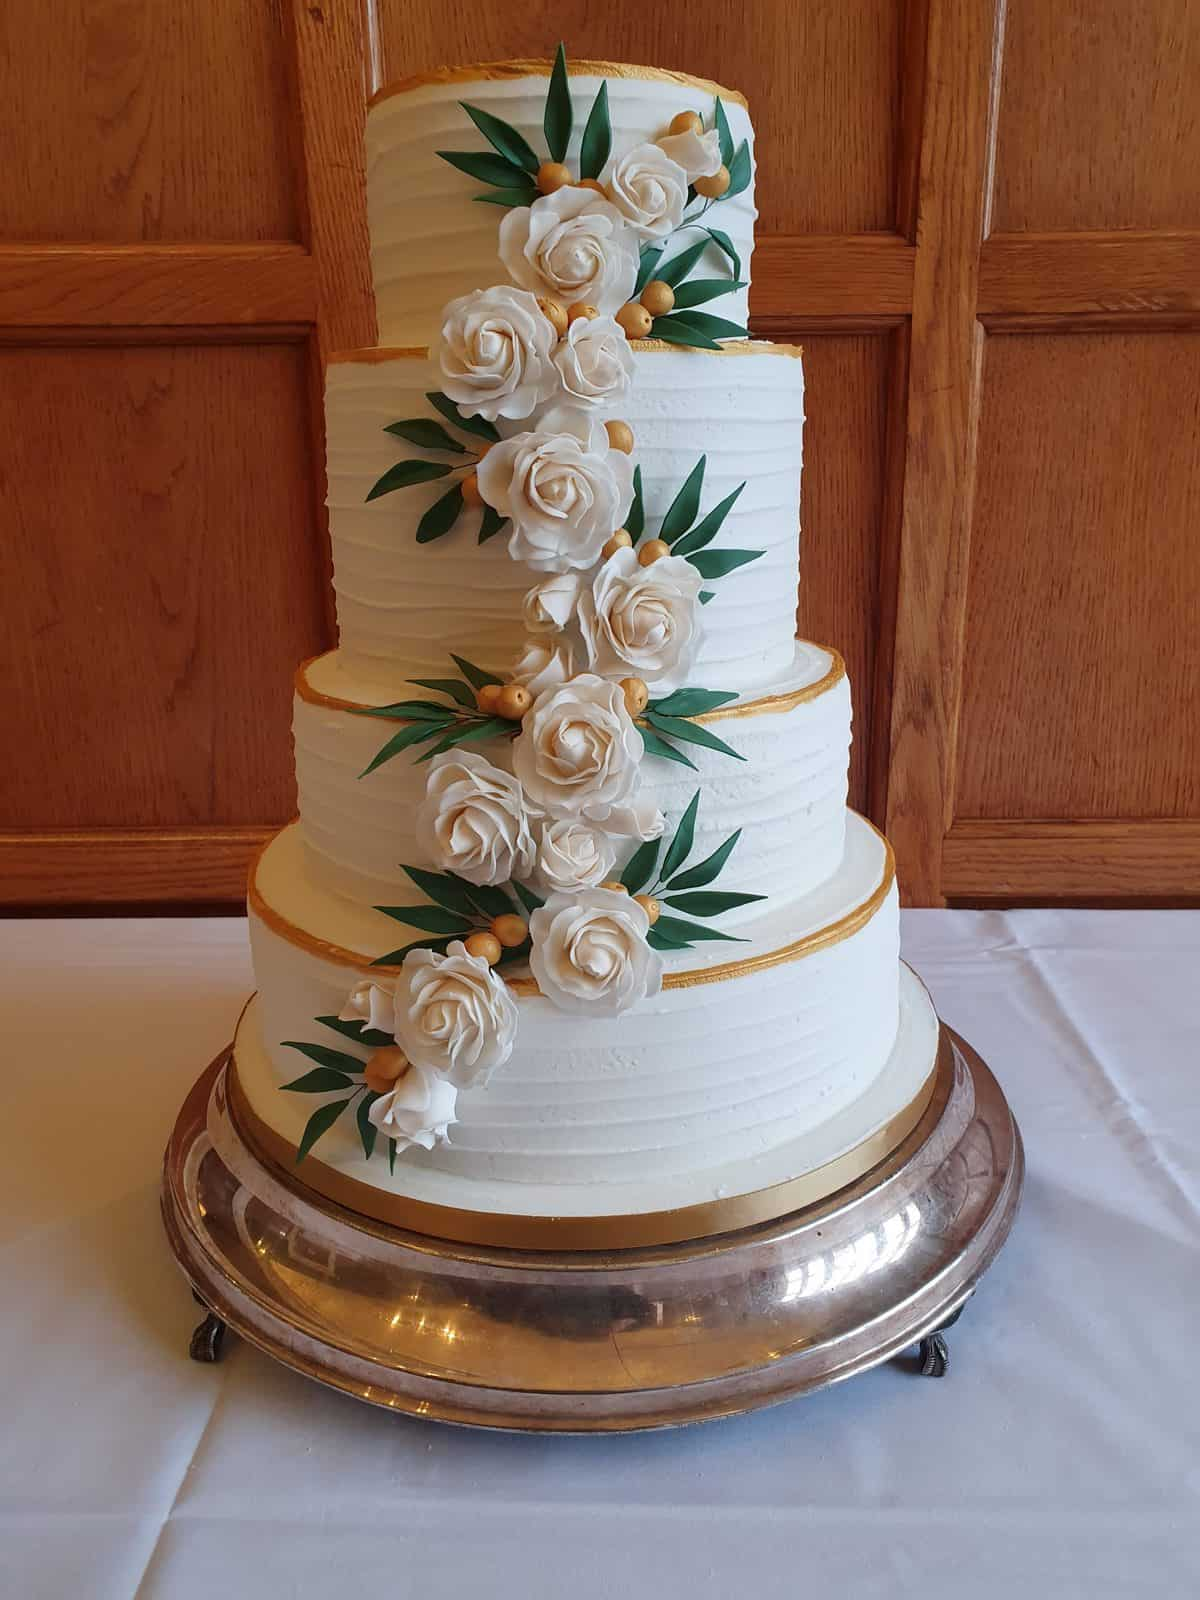 Red & Gold 5 tier wedding cake